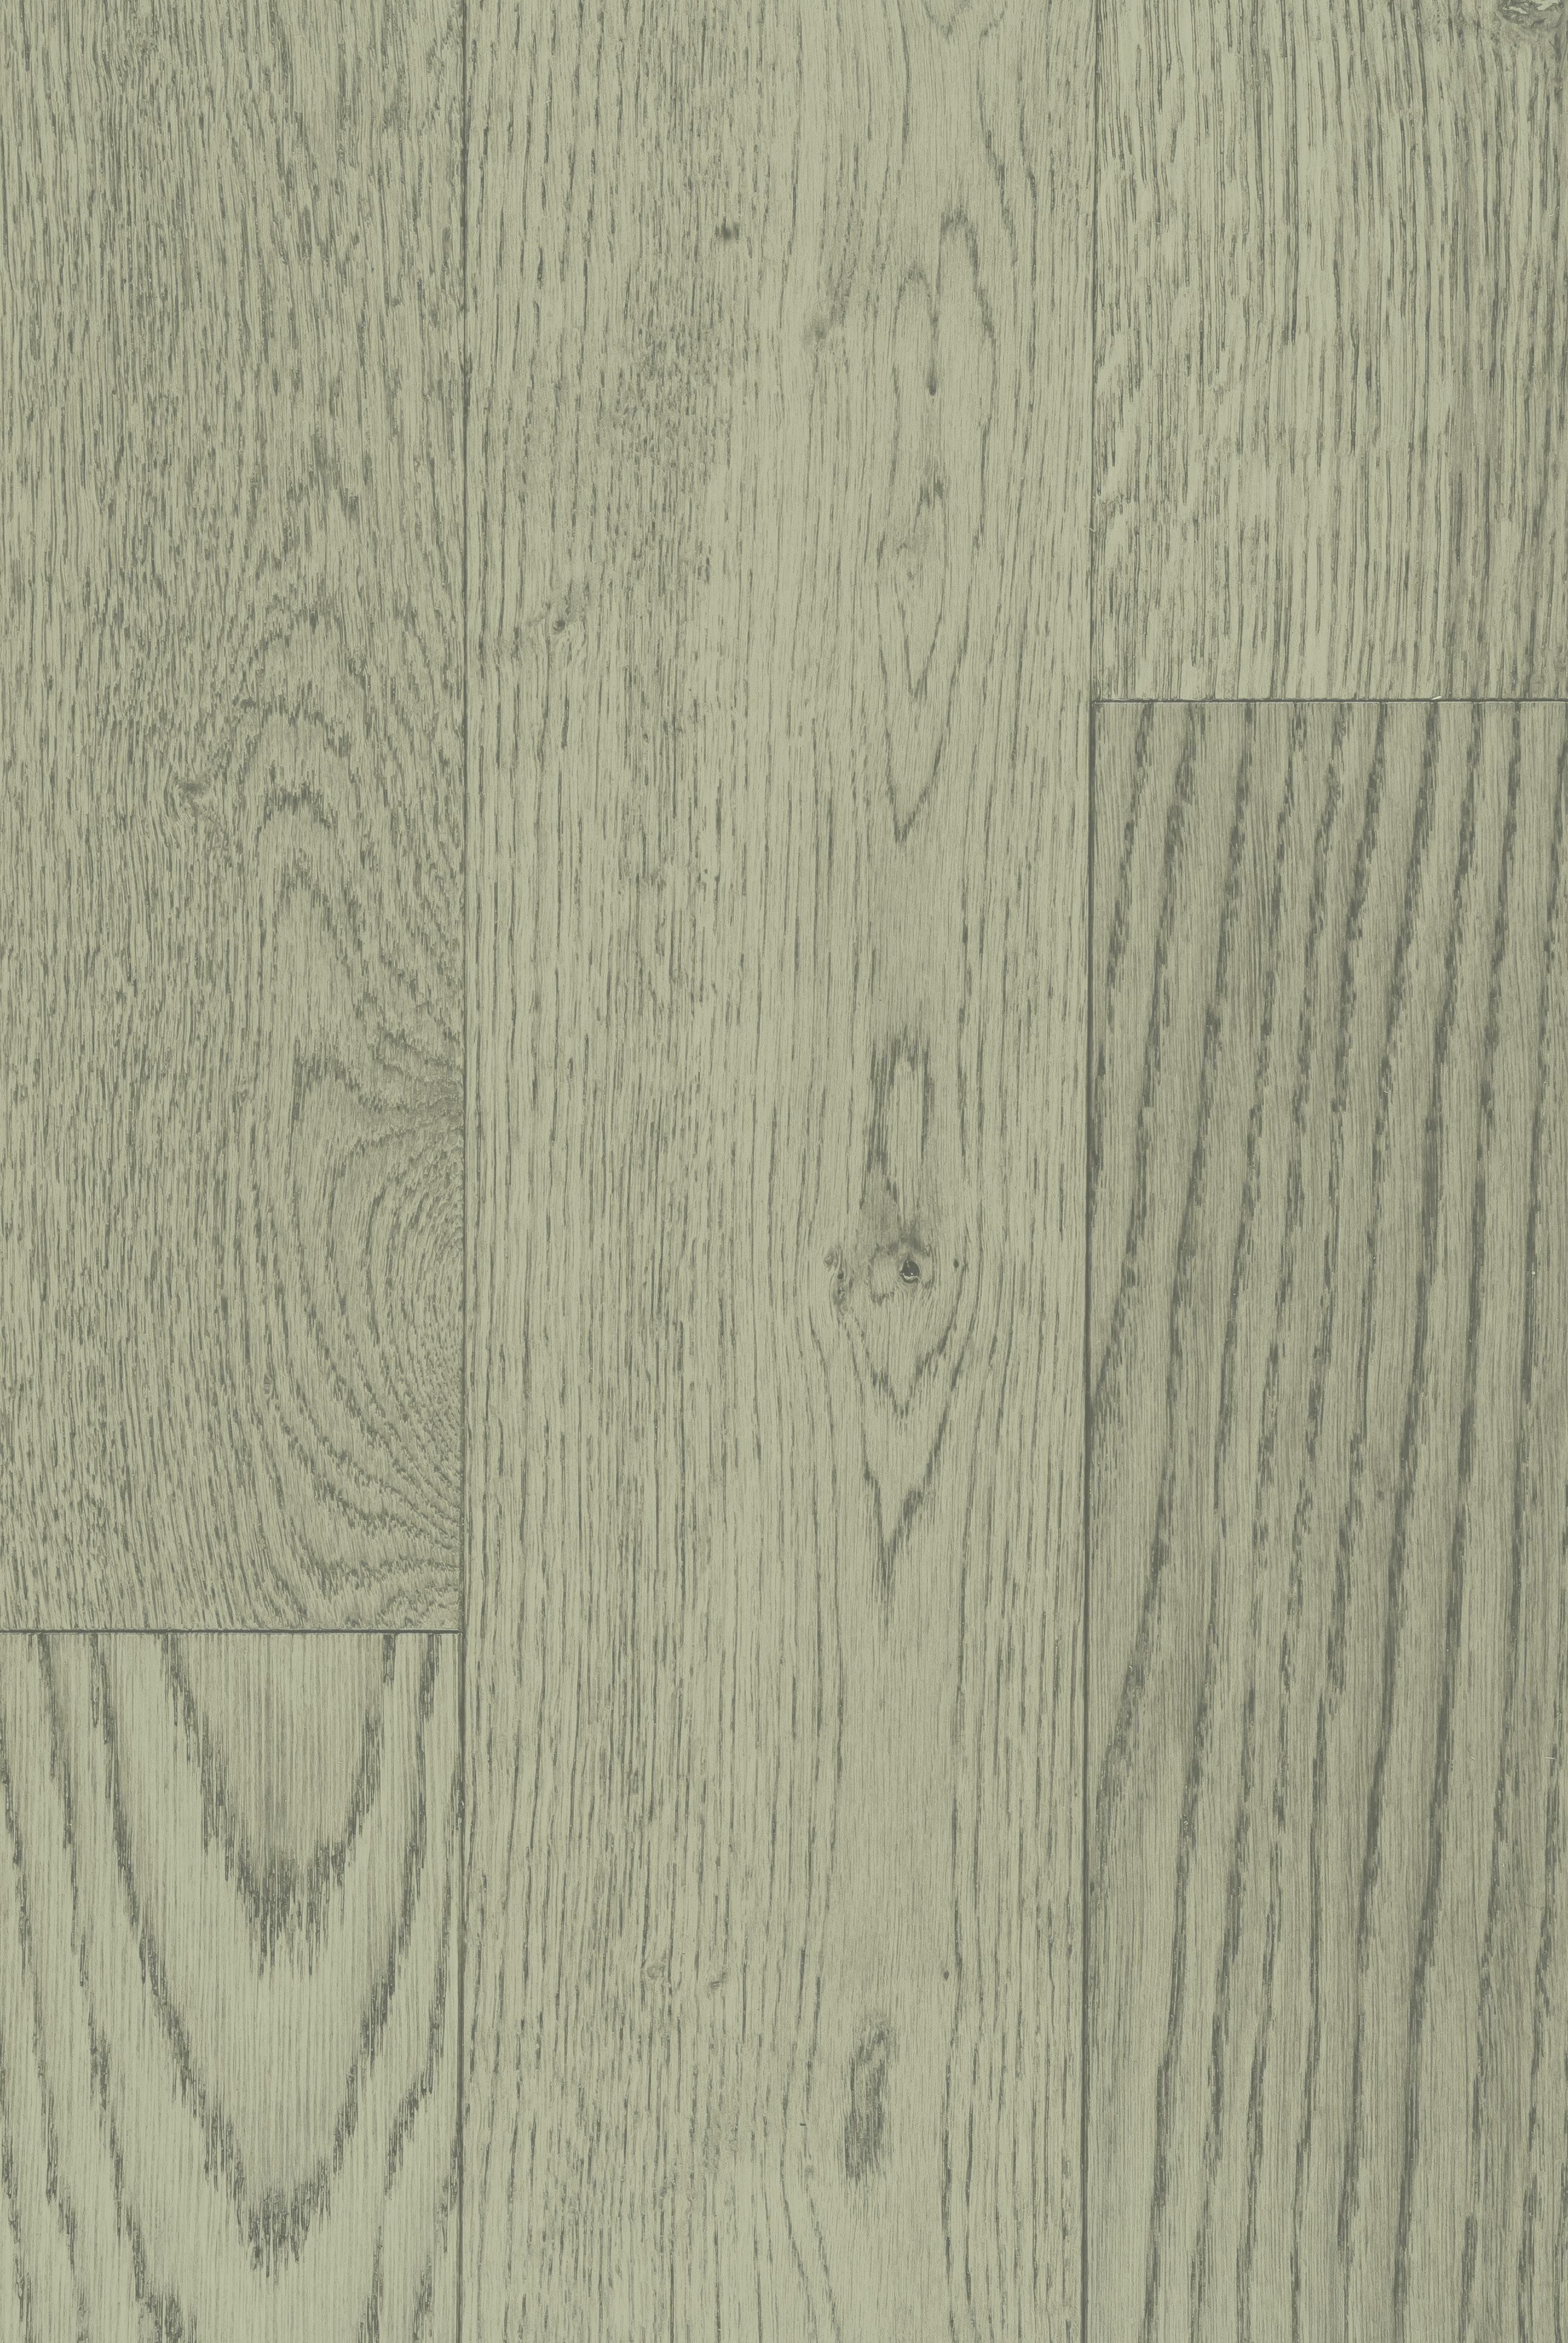 Tuscan Forte Light Grey Saw Marks Lacquered Tf517 Engineered Wood Flooring